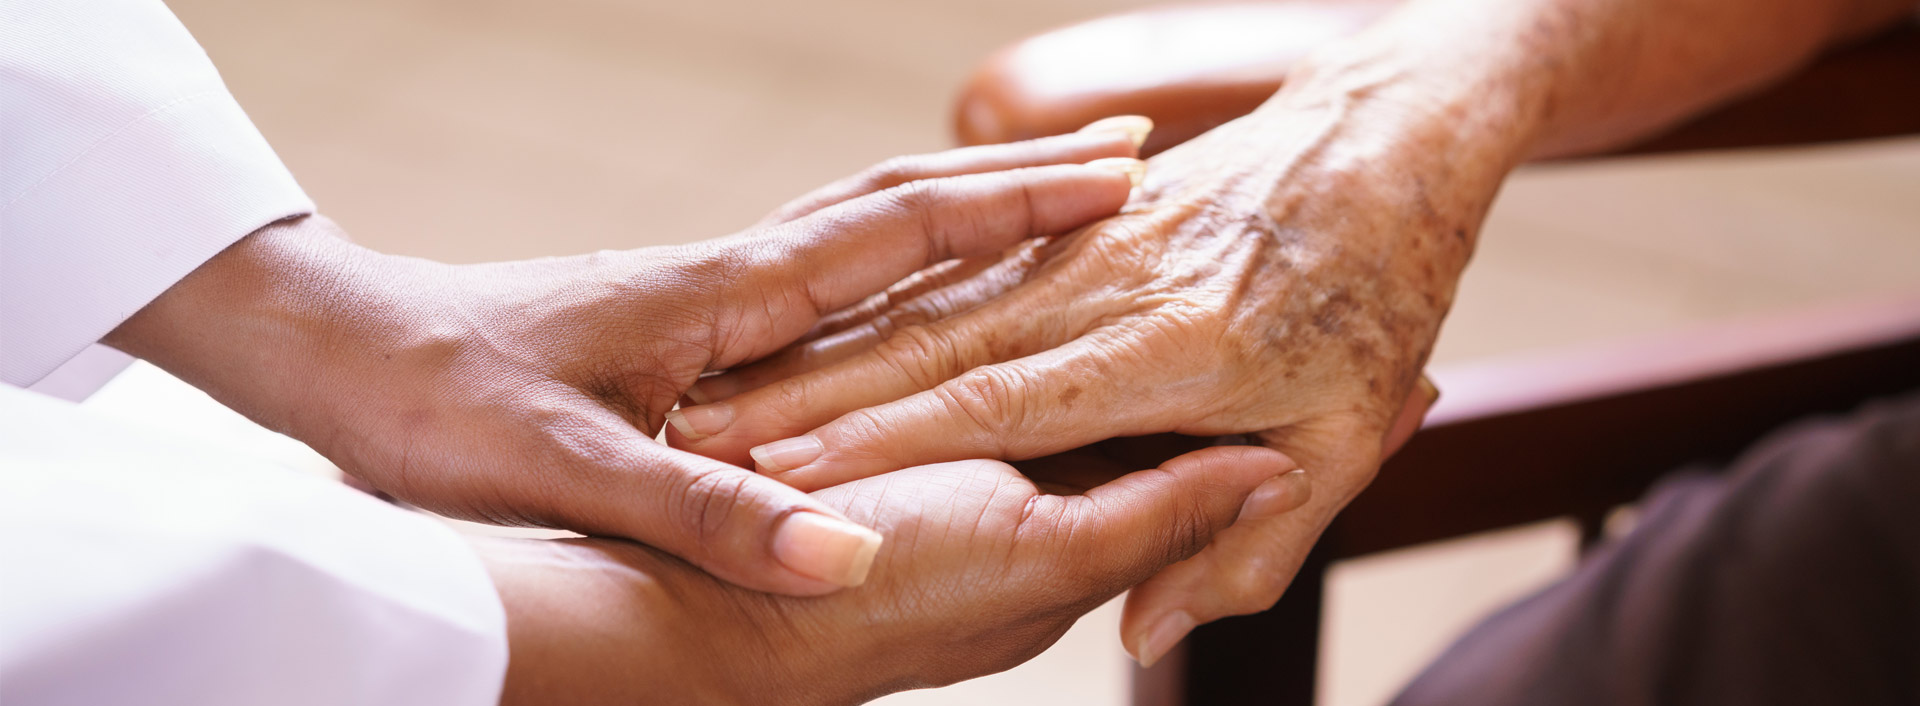 November is National Home Care and Hospice Month